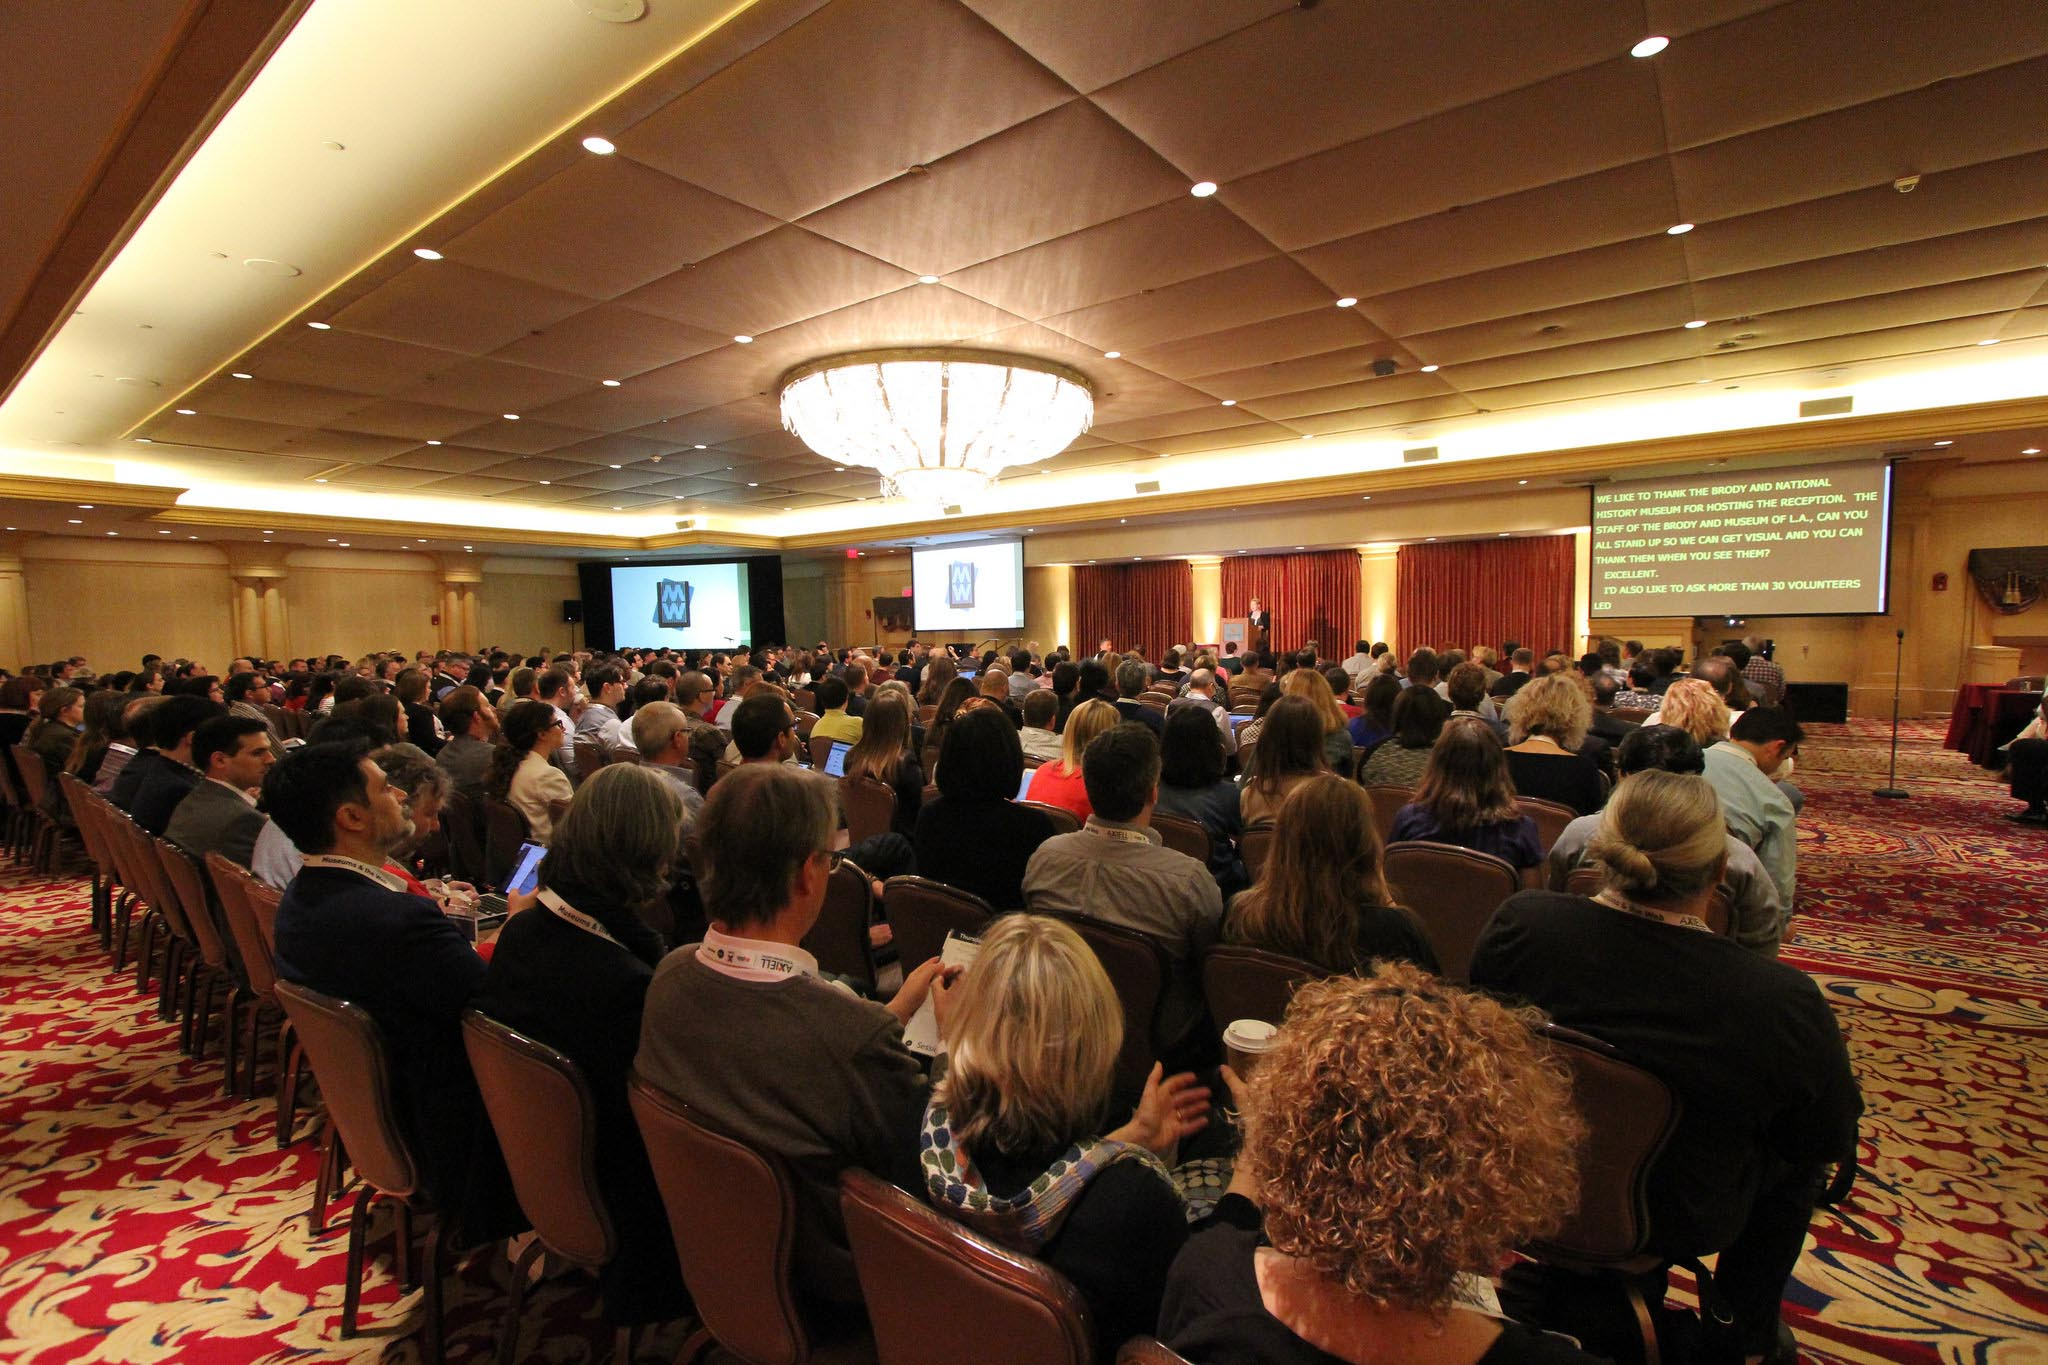 Authors and Workshop Leaders: Crowded room full of MWXX attendees in 2016.